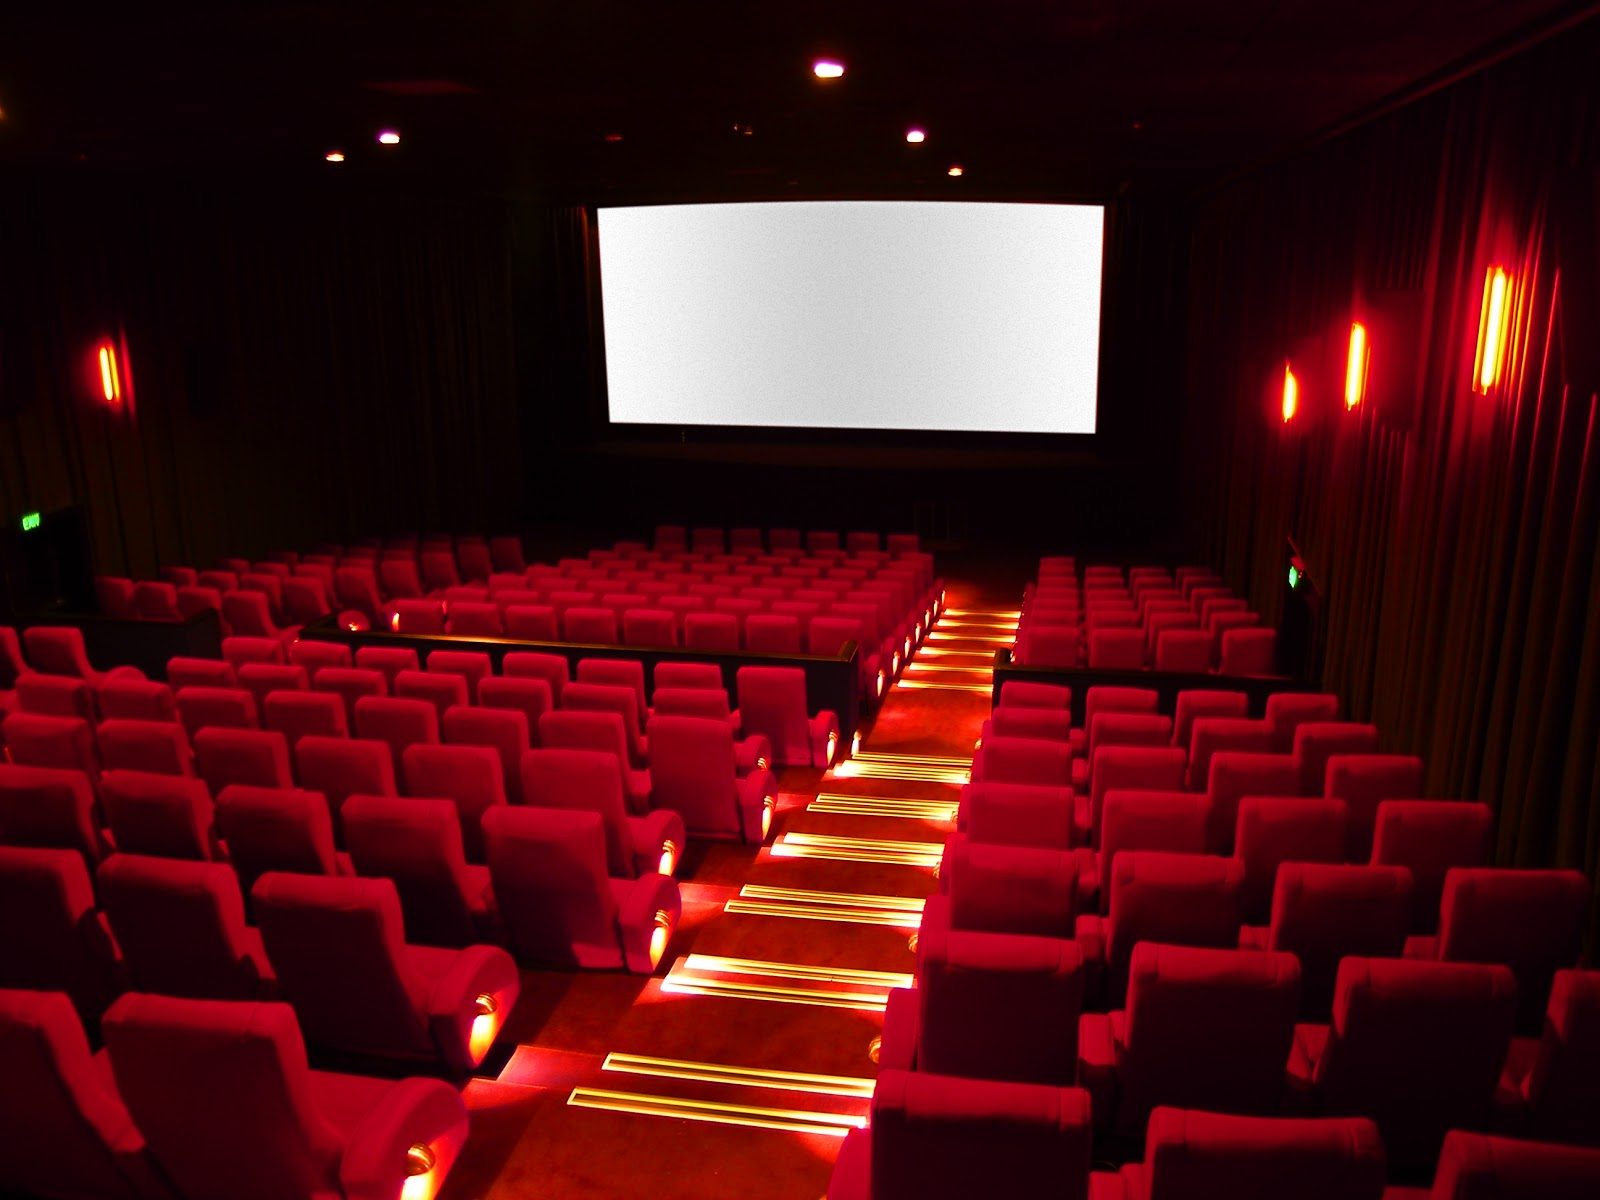 If you are one of our monthly winners and select a $100 cinema voucher, please let us know the cinema of your choice.